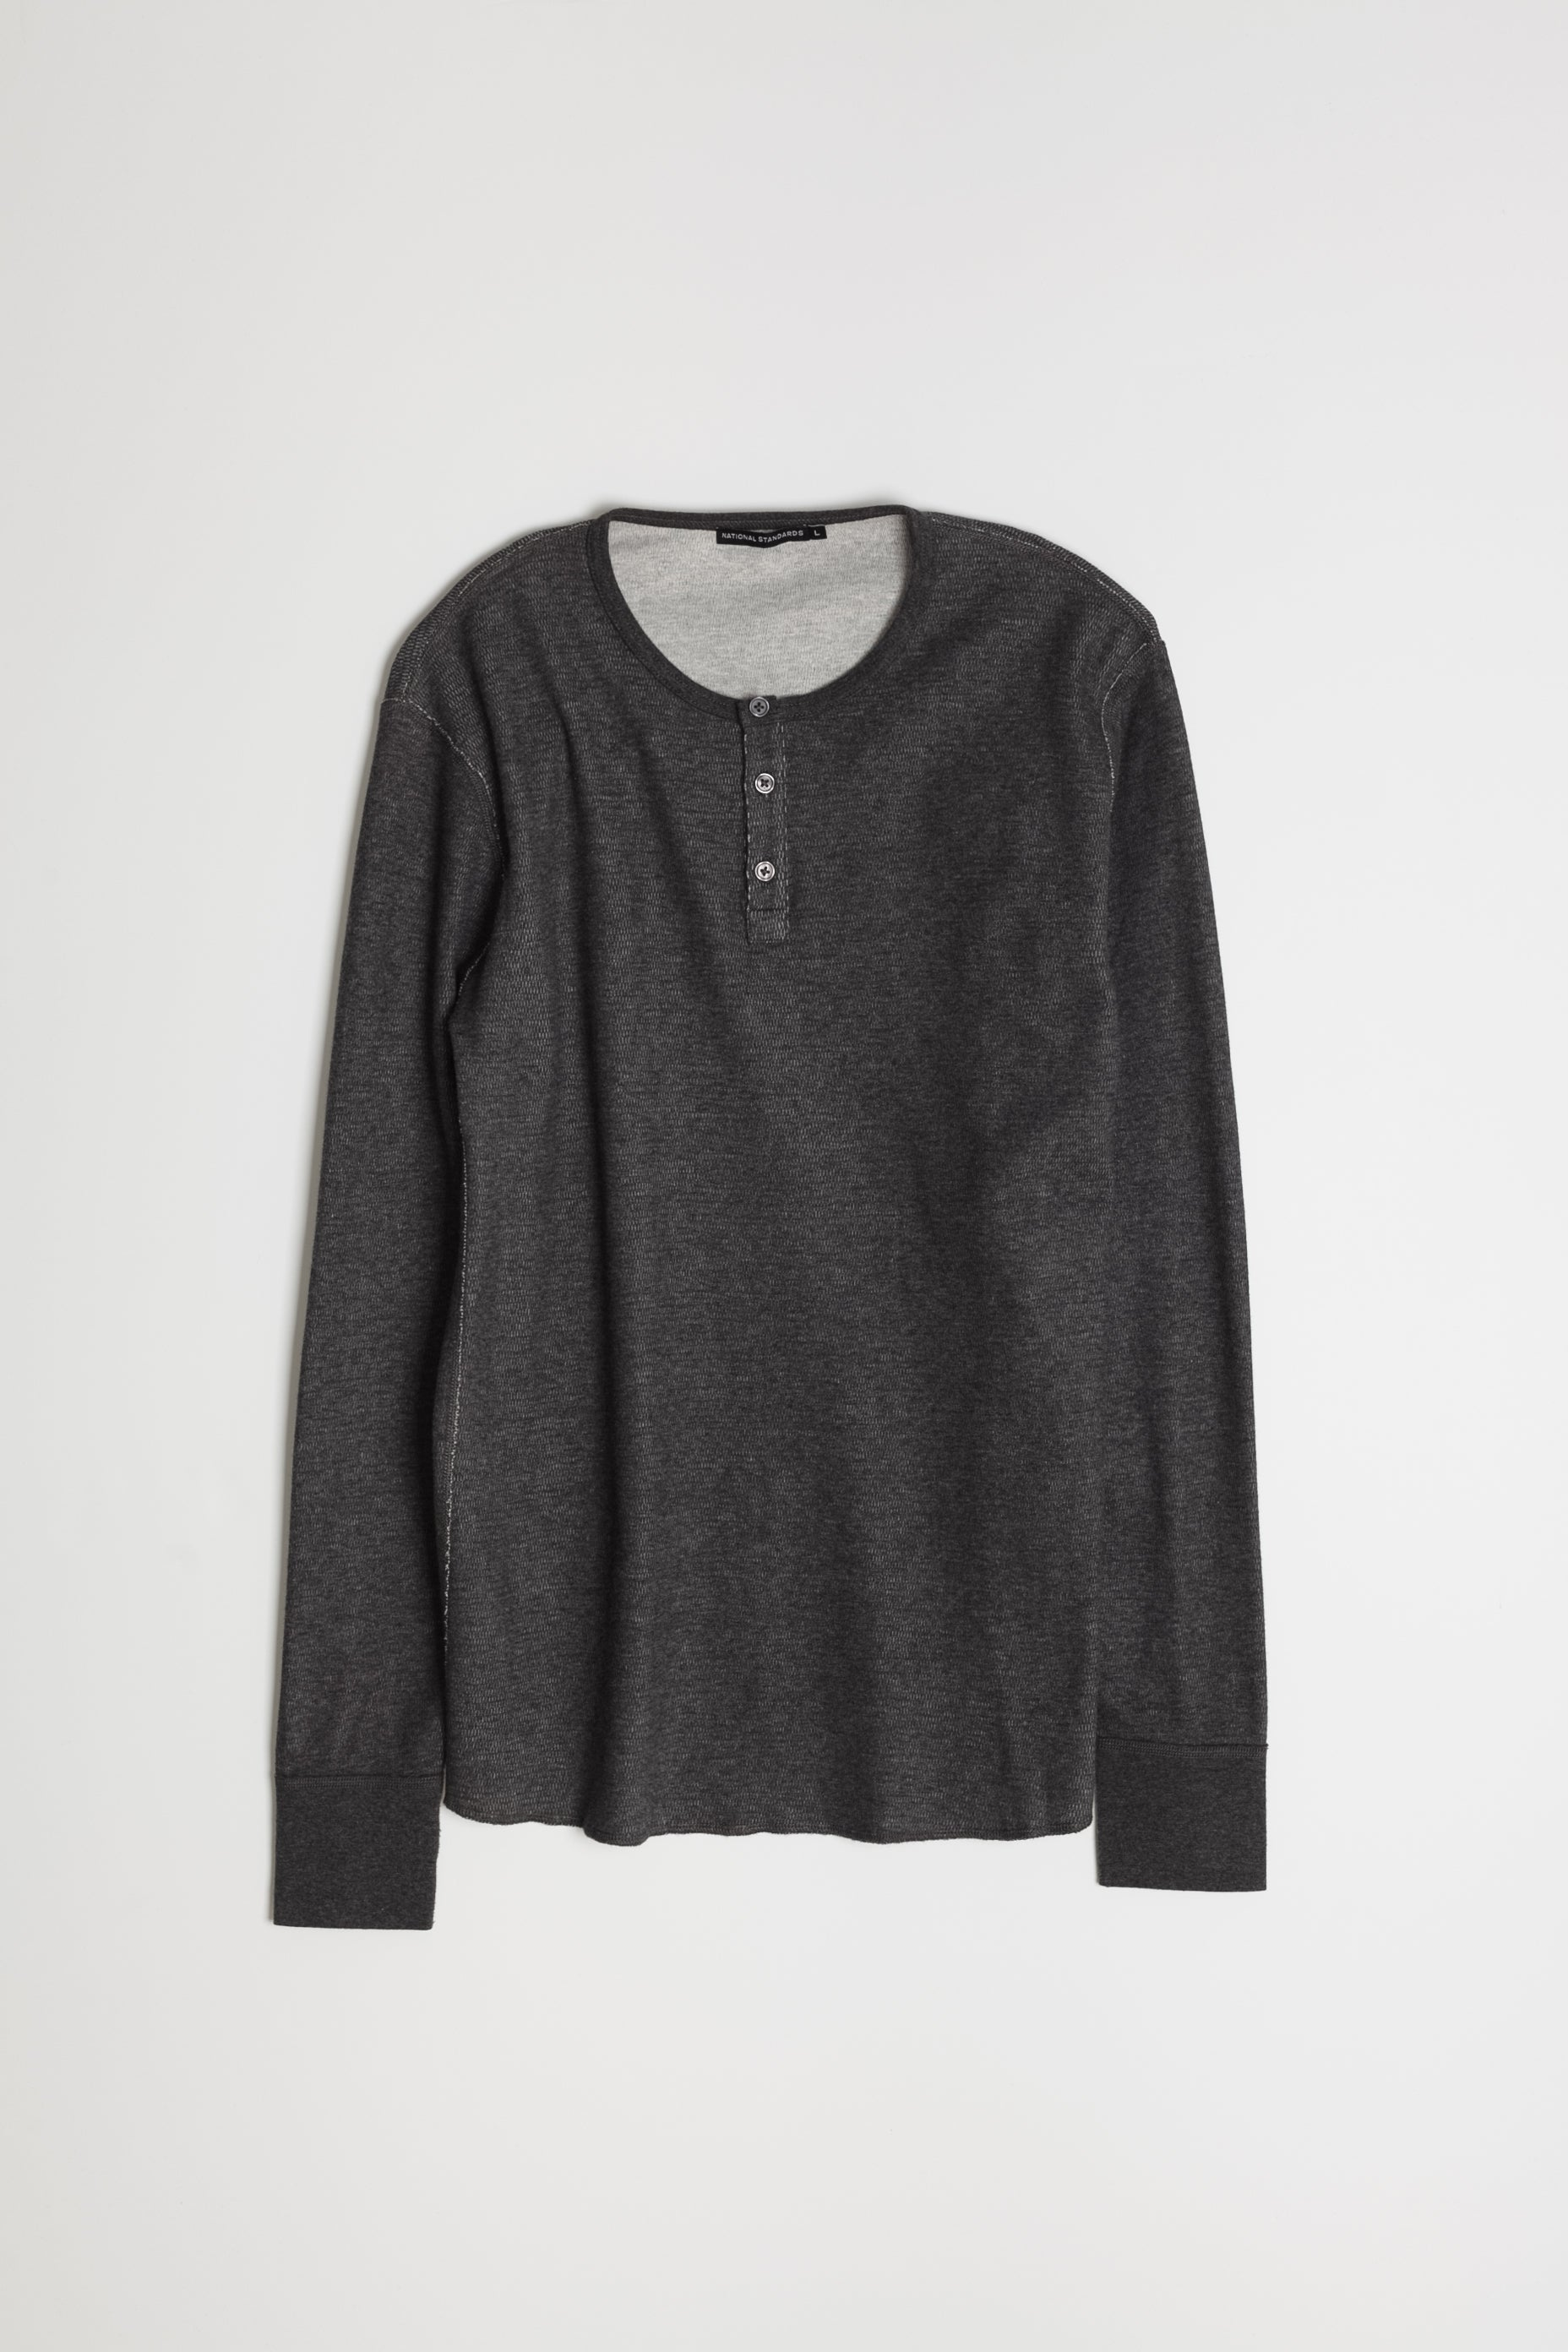 mesh thermal henley in melange charcoal 07